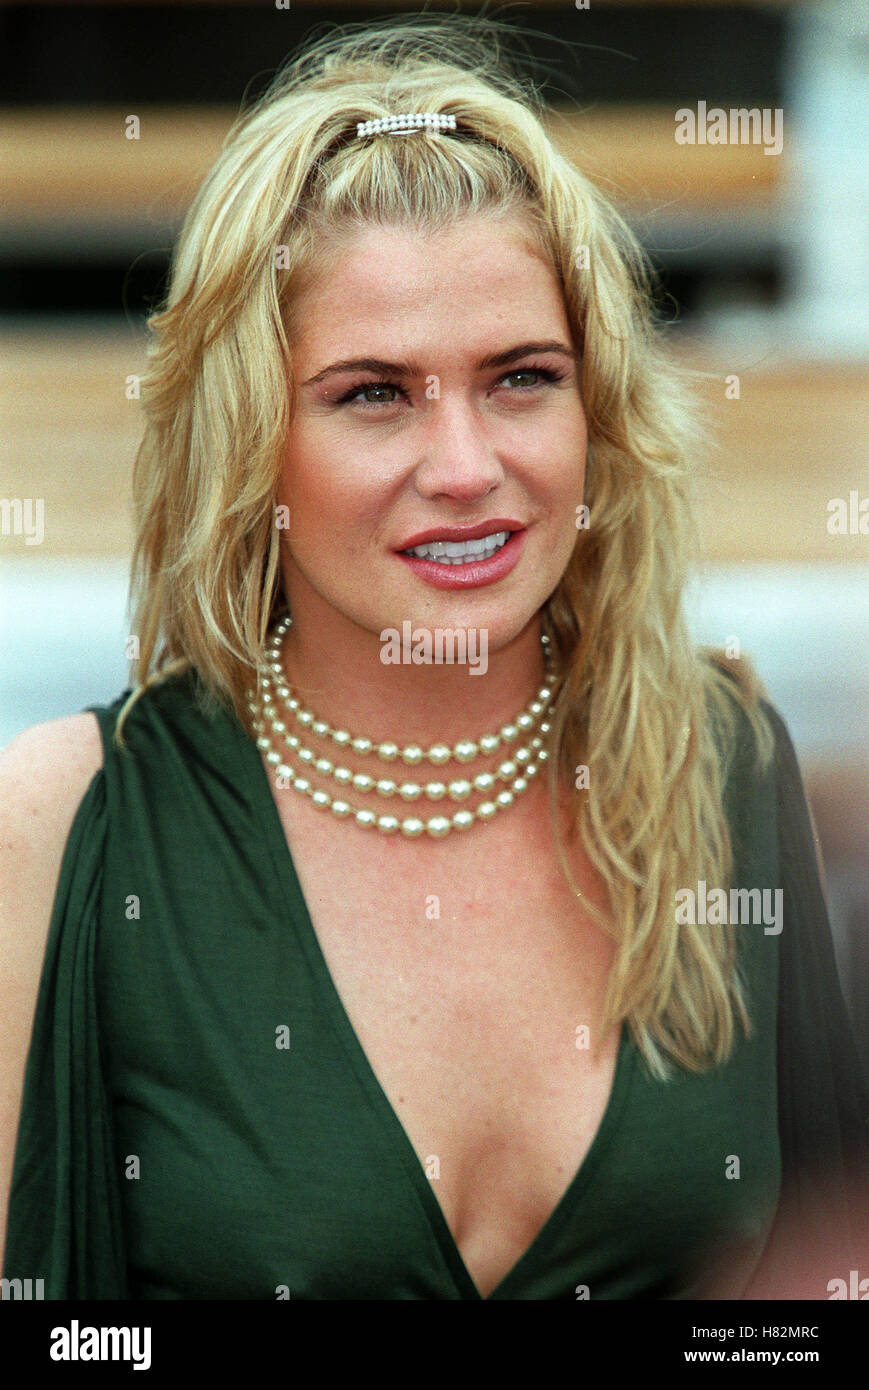 KRISTY SWANSON CANNES FILM FESTIVAL CANNES FRANCE EUROPE 10 May 2001 - Stock Image